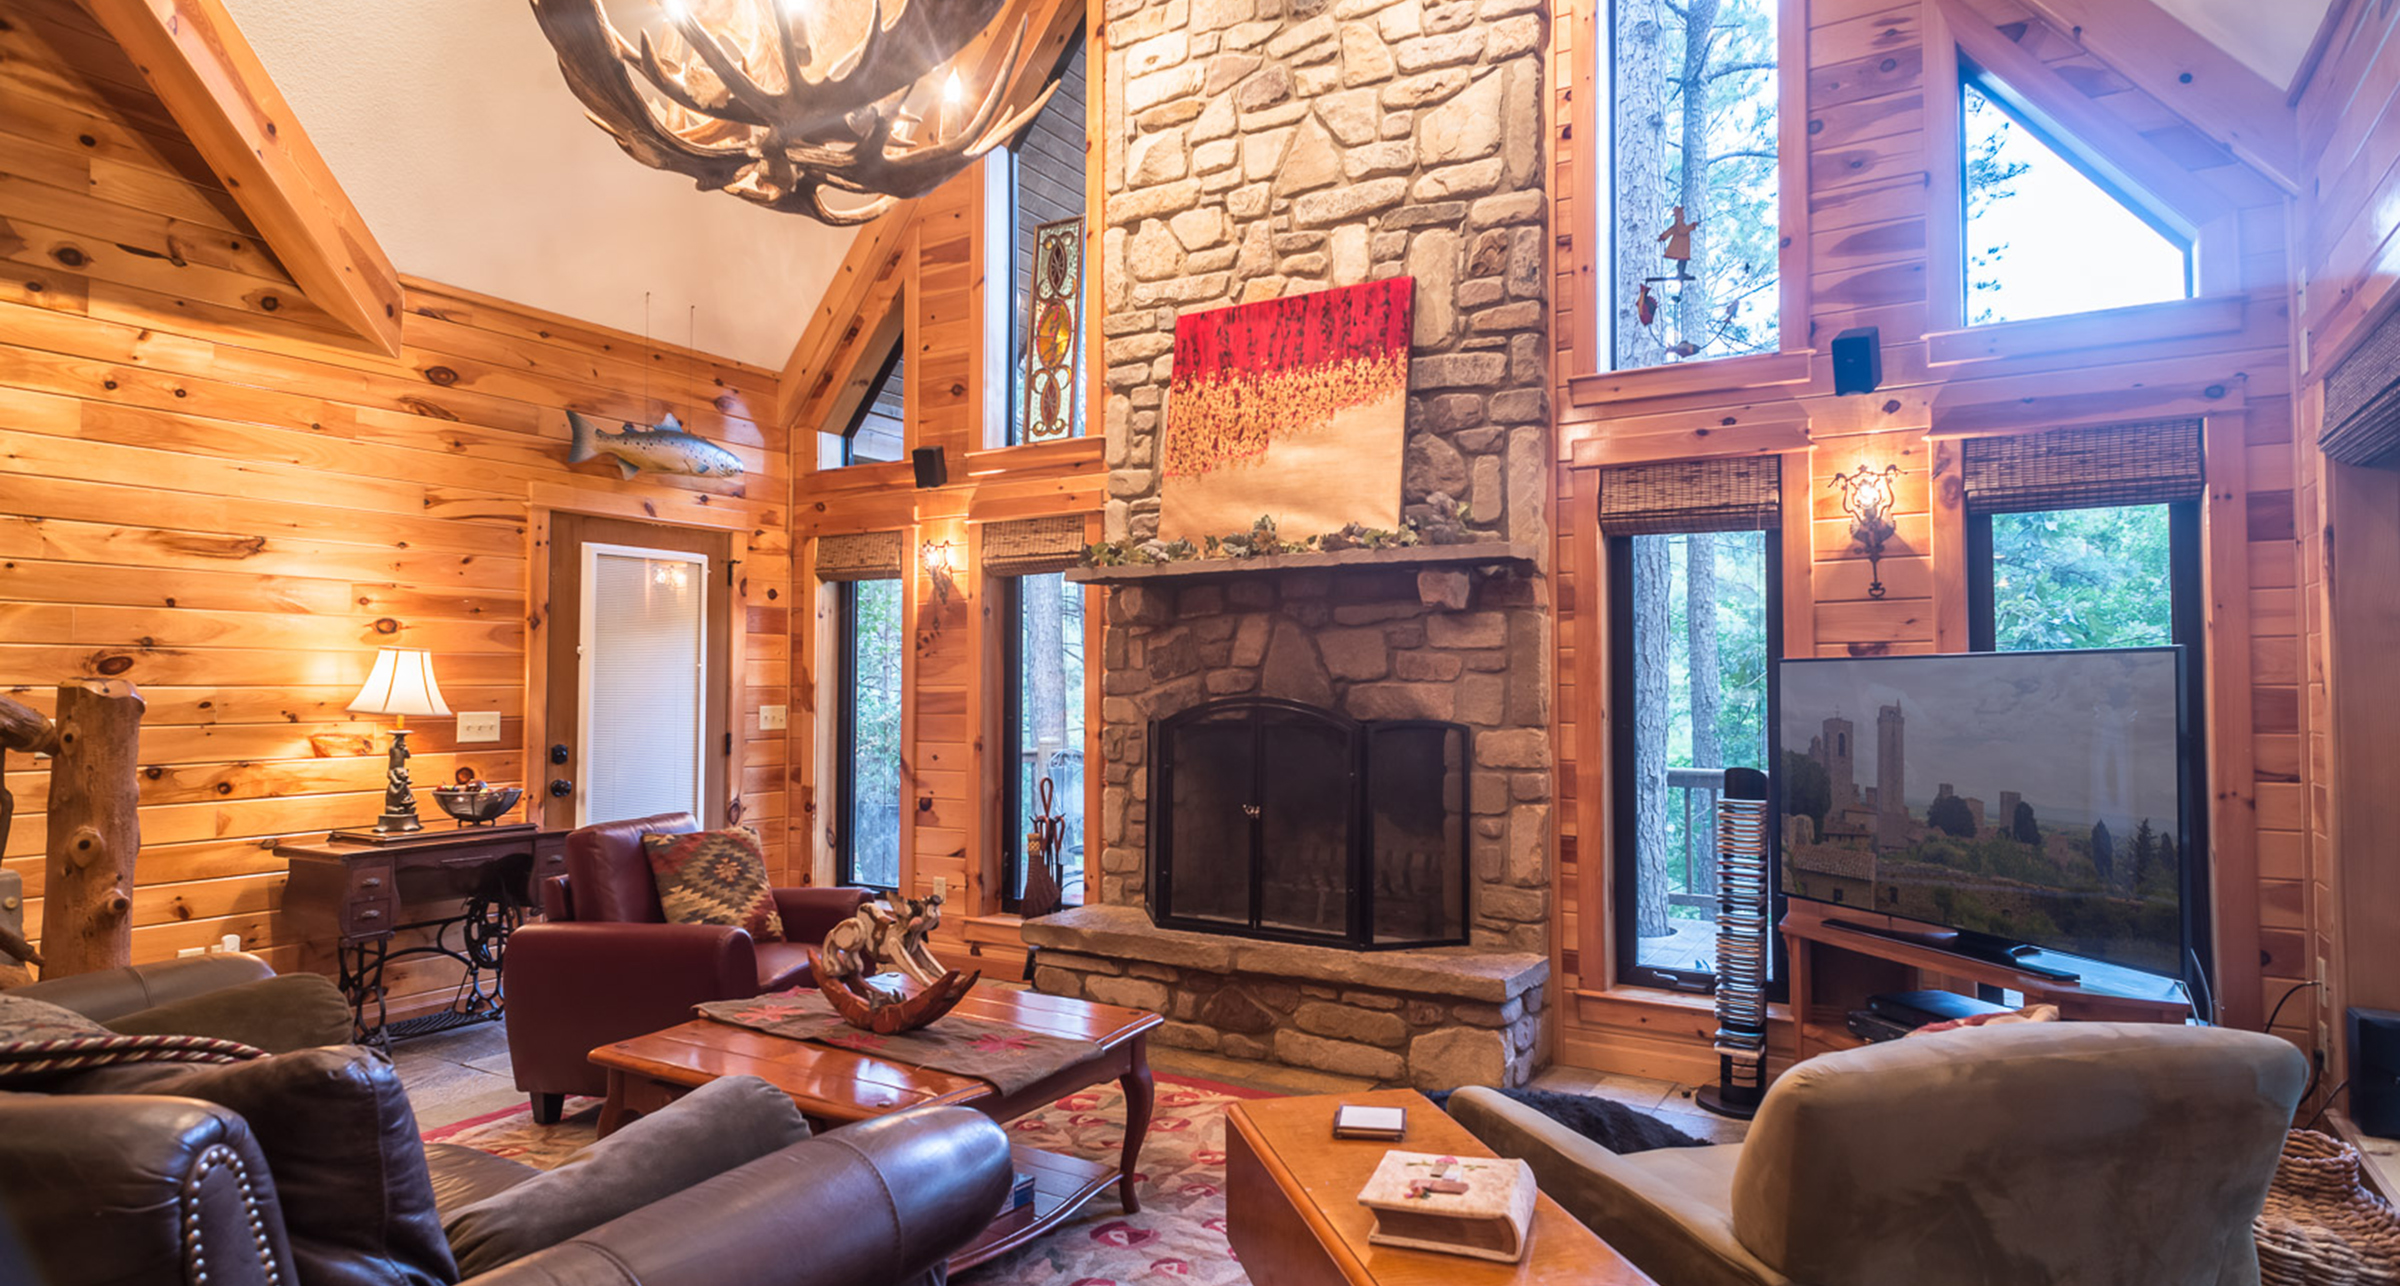 fork river lone ranch in at bighorn lonemountainranch cabin sits north s creek on cabins the montana pin mountain log